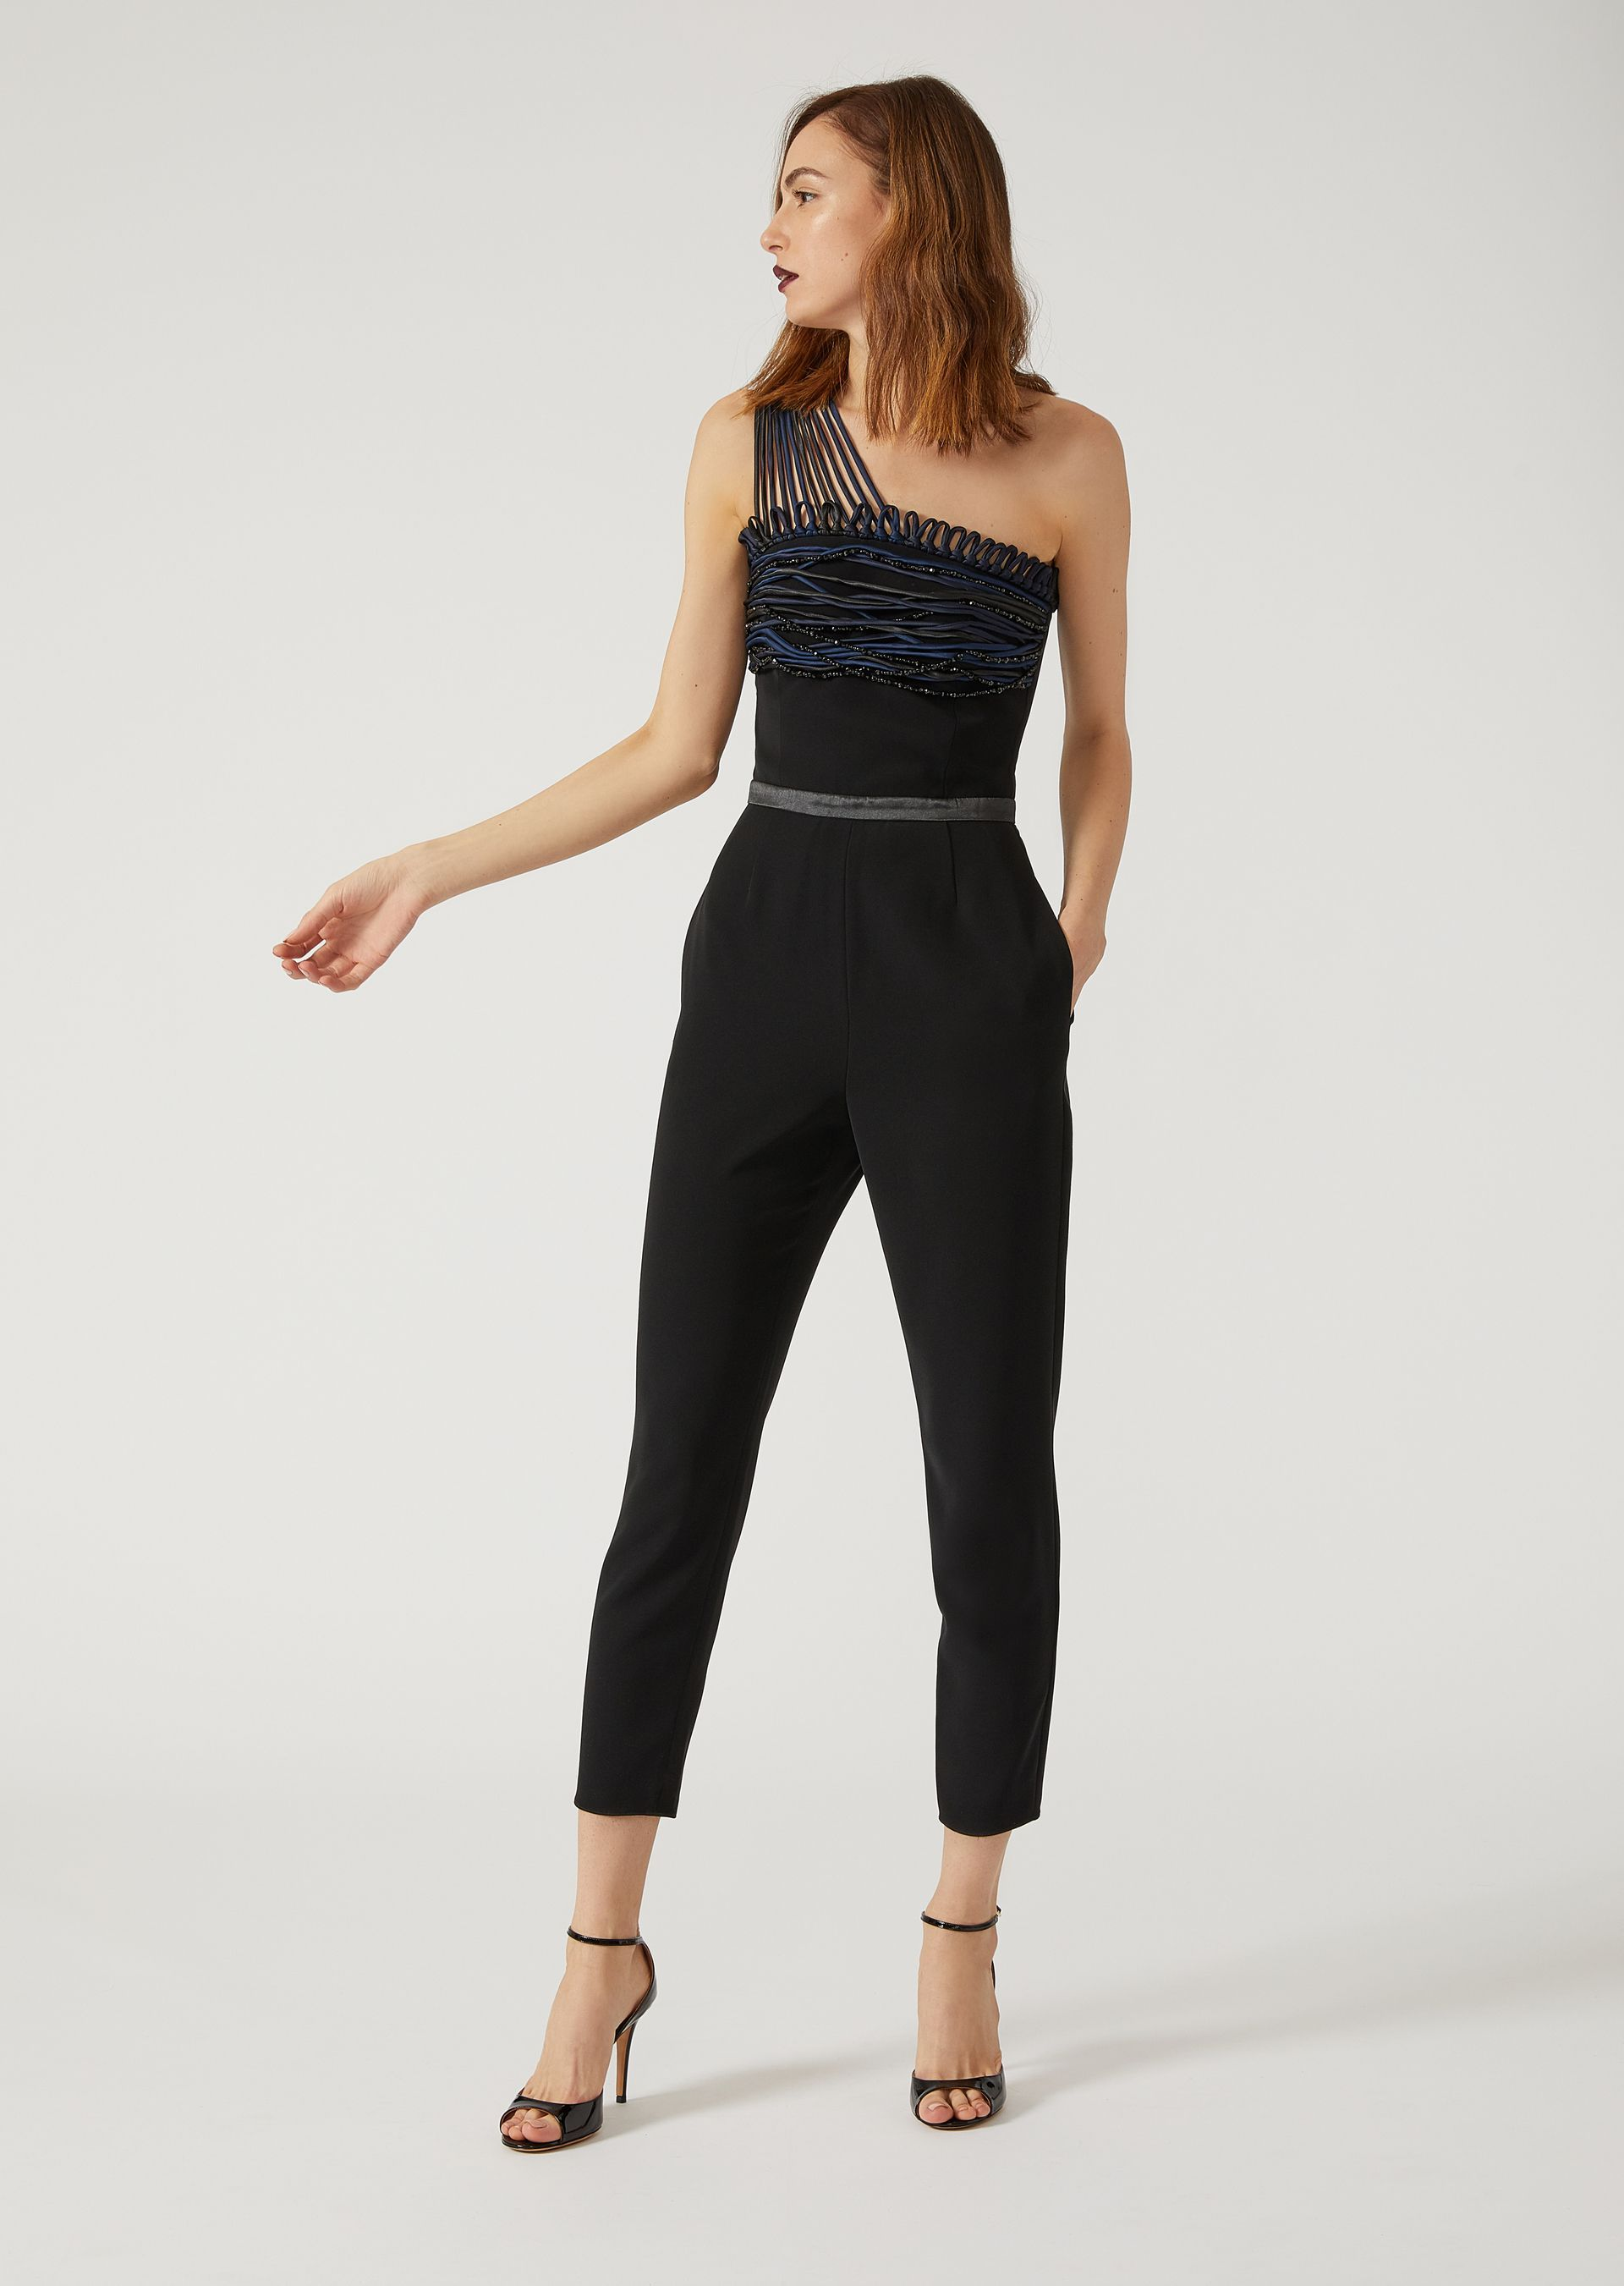 433637e0f5c Fine materials and design for this Crêpe And Satin Jumpsuit With Decorative  Beaded Detailing by Emporio Armani Women. Take a look at the official  online ...